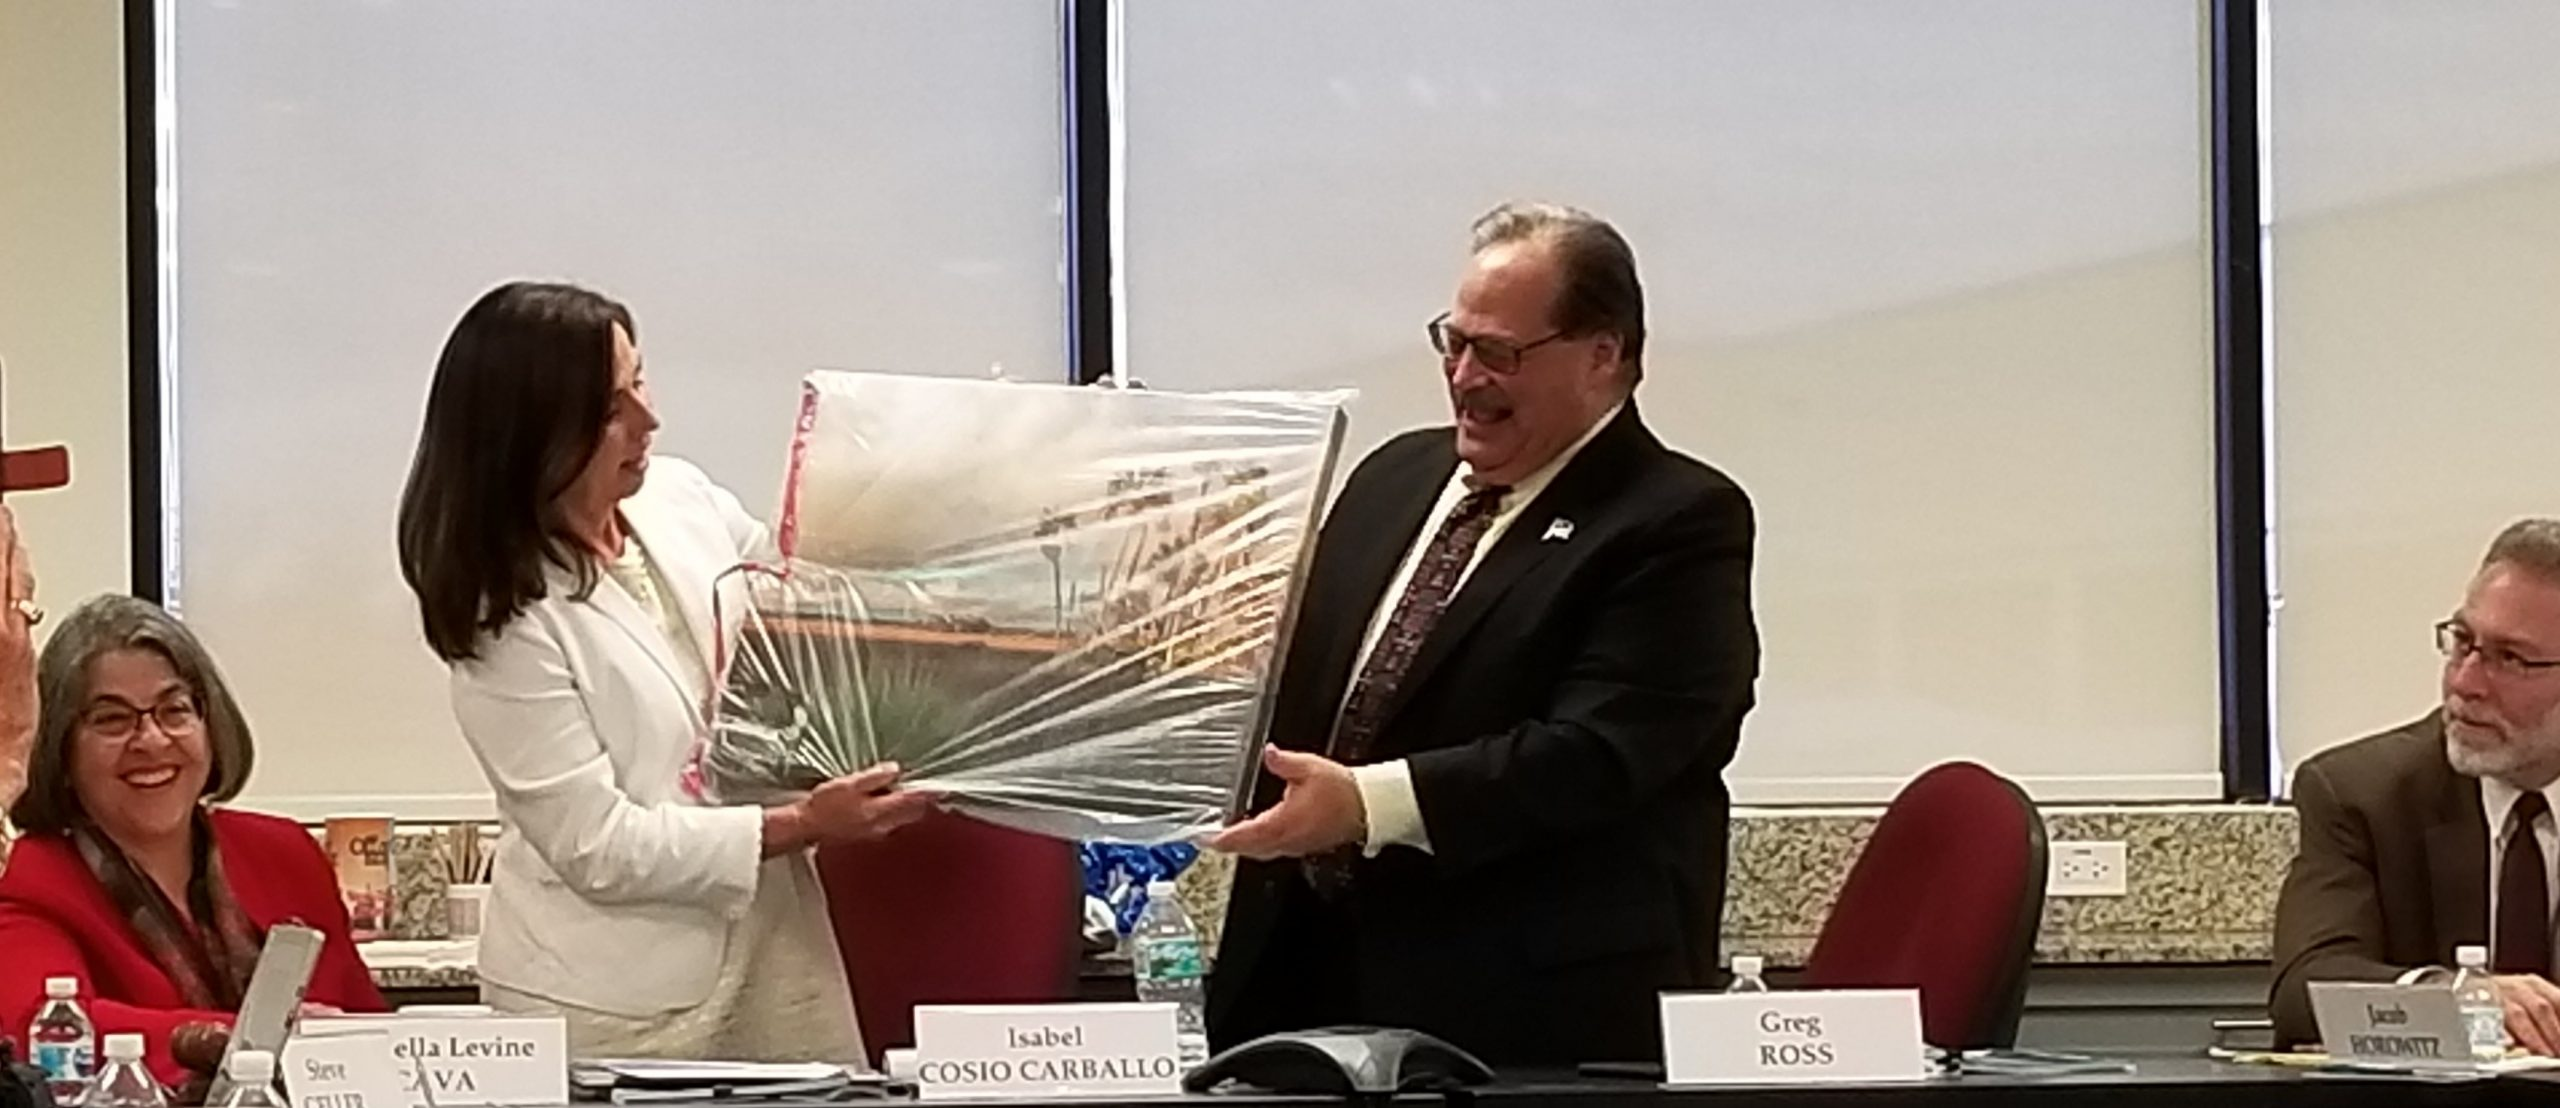 isabel carballo handing former chair Greg Ross a painting of a beach in South Florida